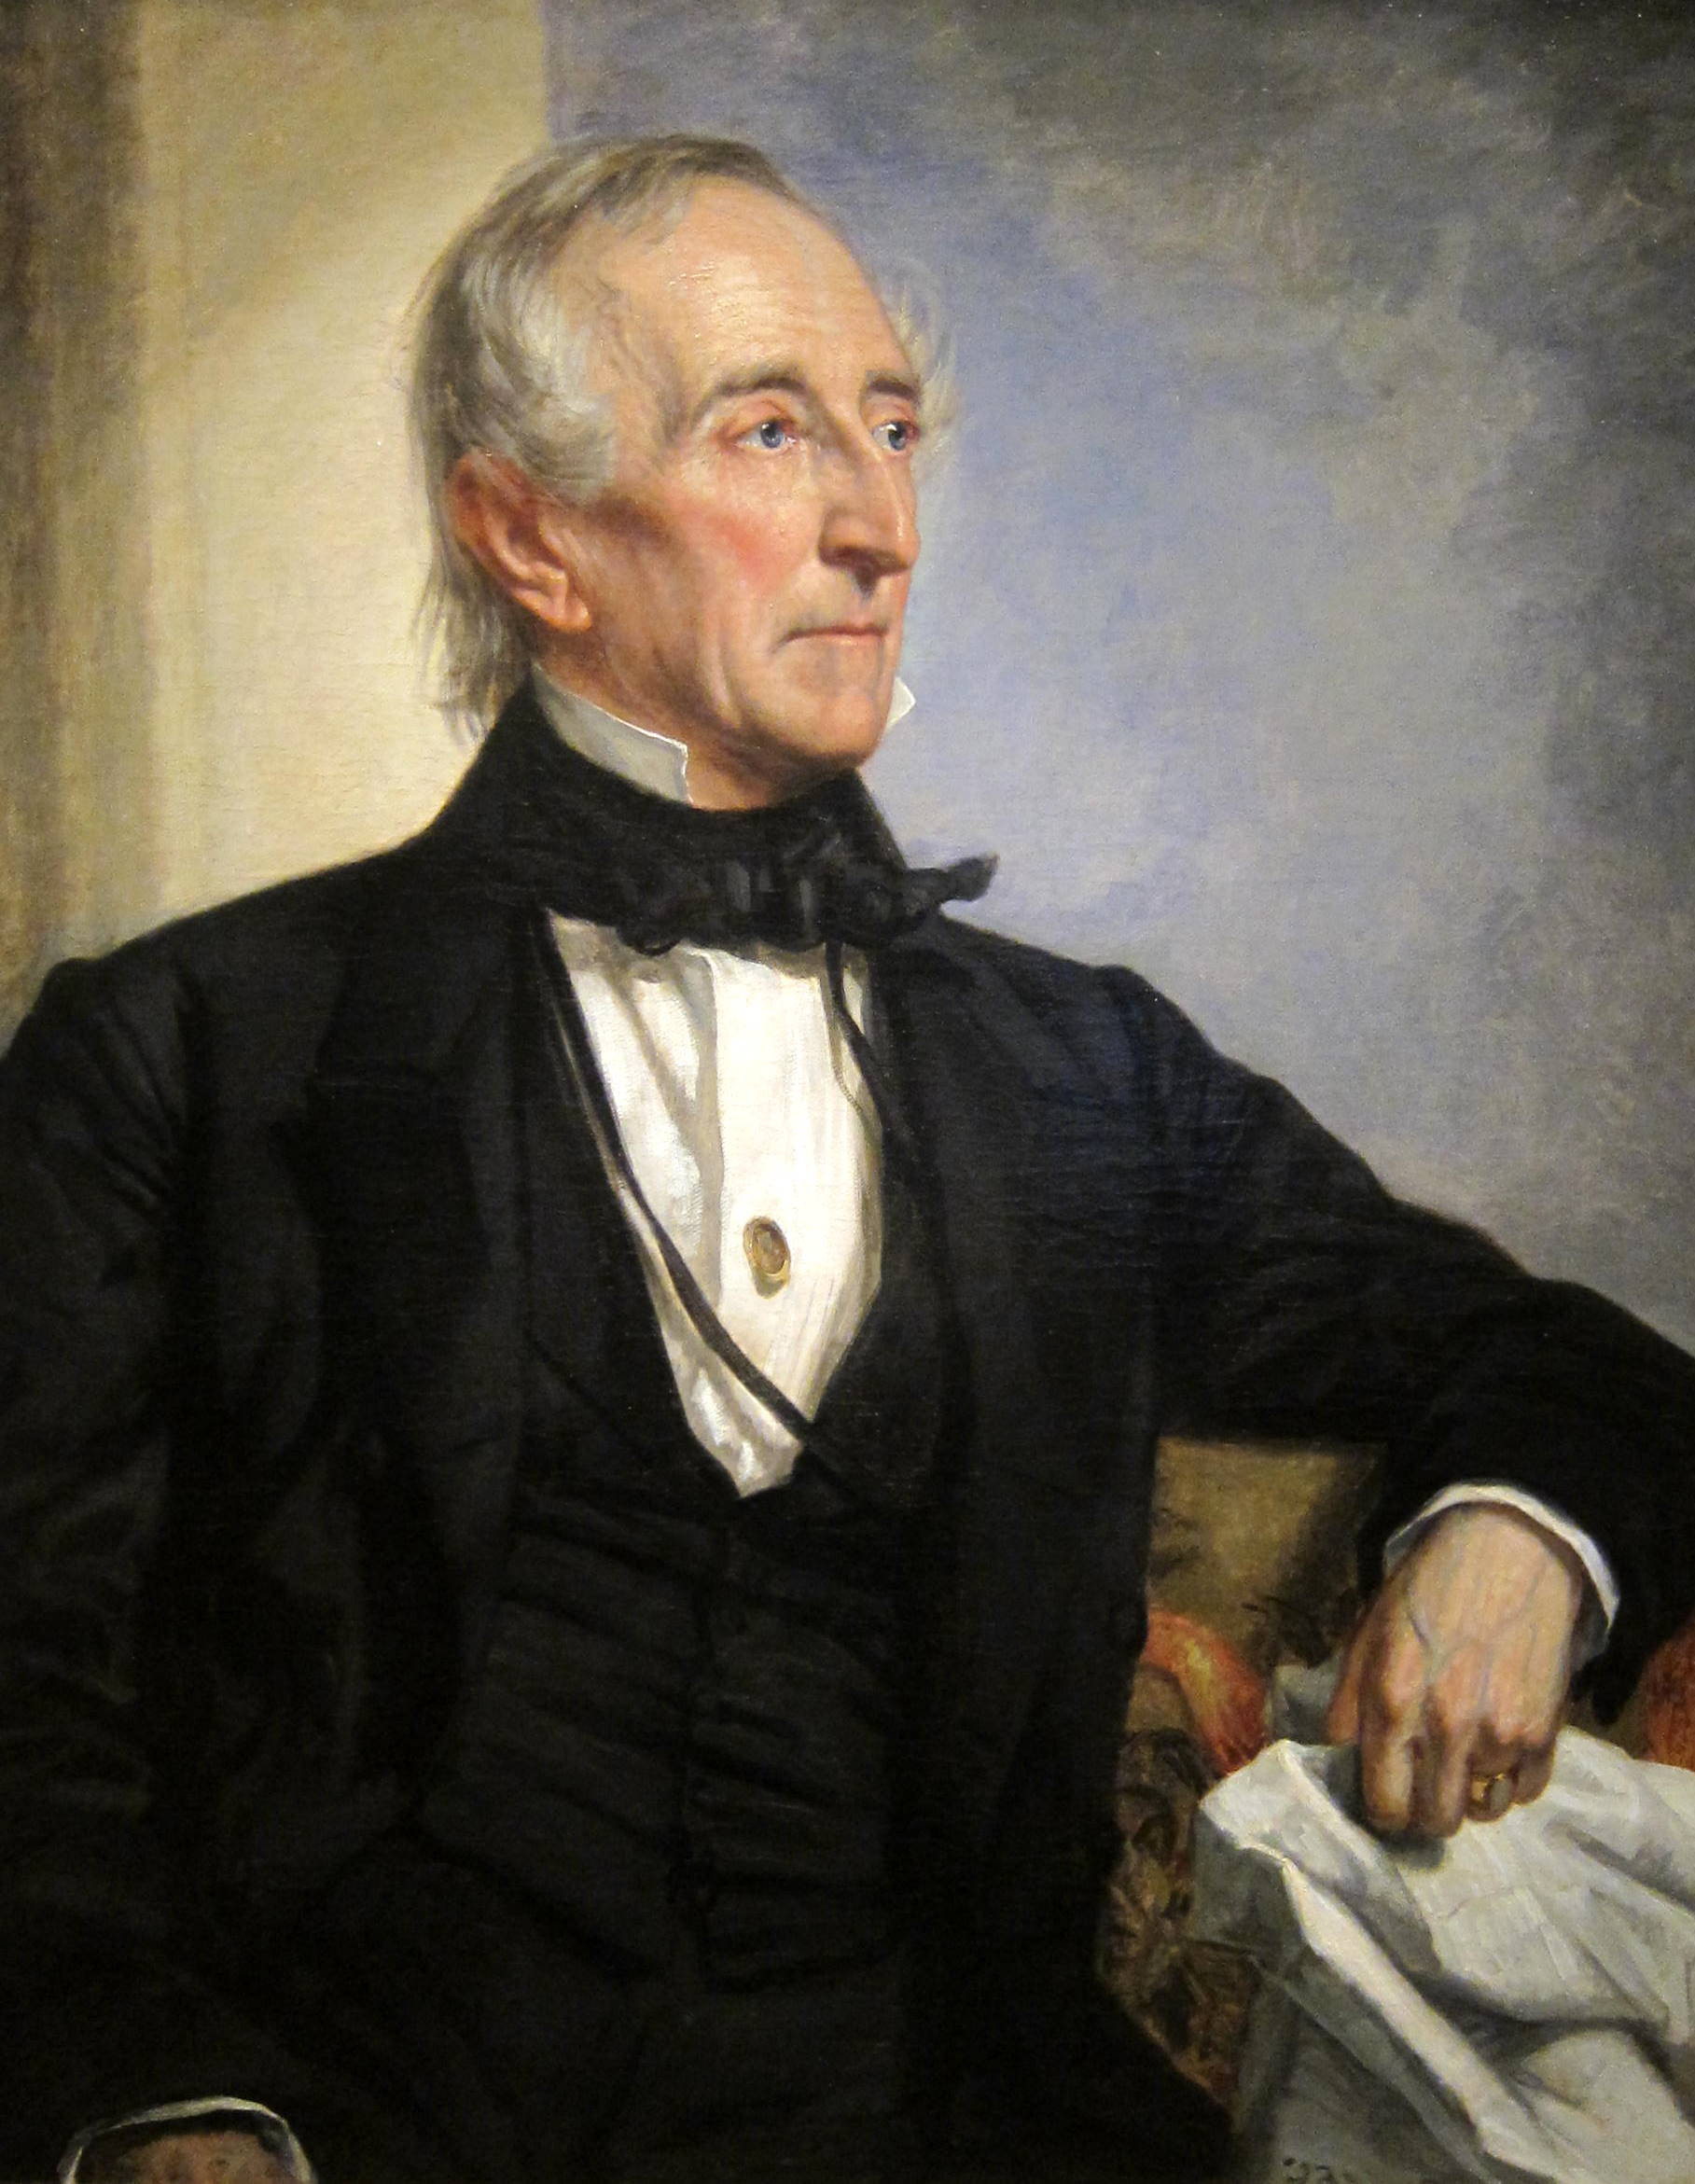 http://upload.wikimedia.org/wikipedia/commons/8/8b/John_Tyler_by_George_P._A._Healy.JPG